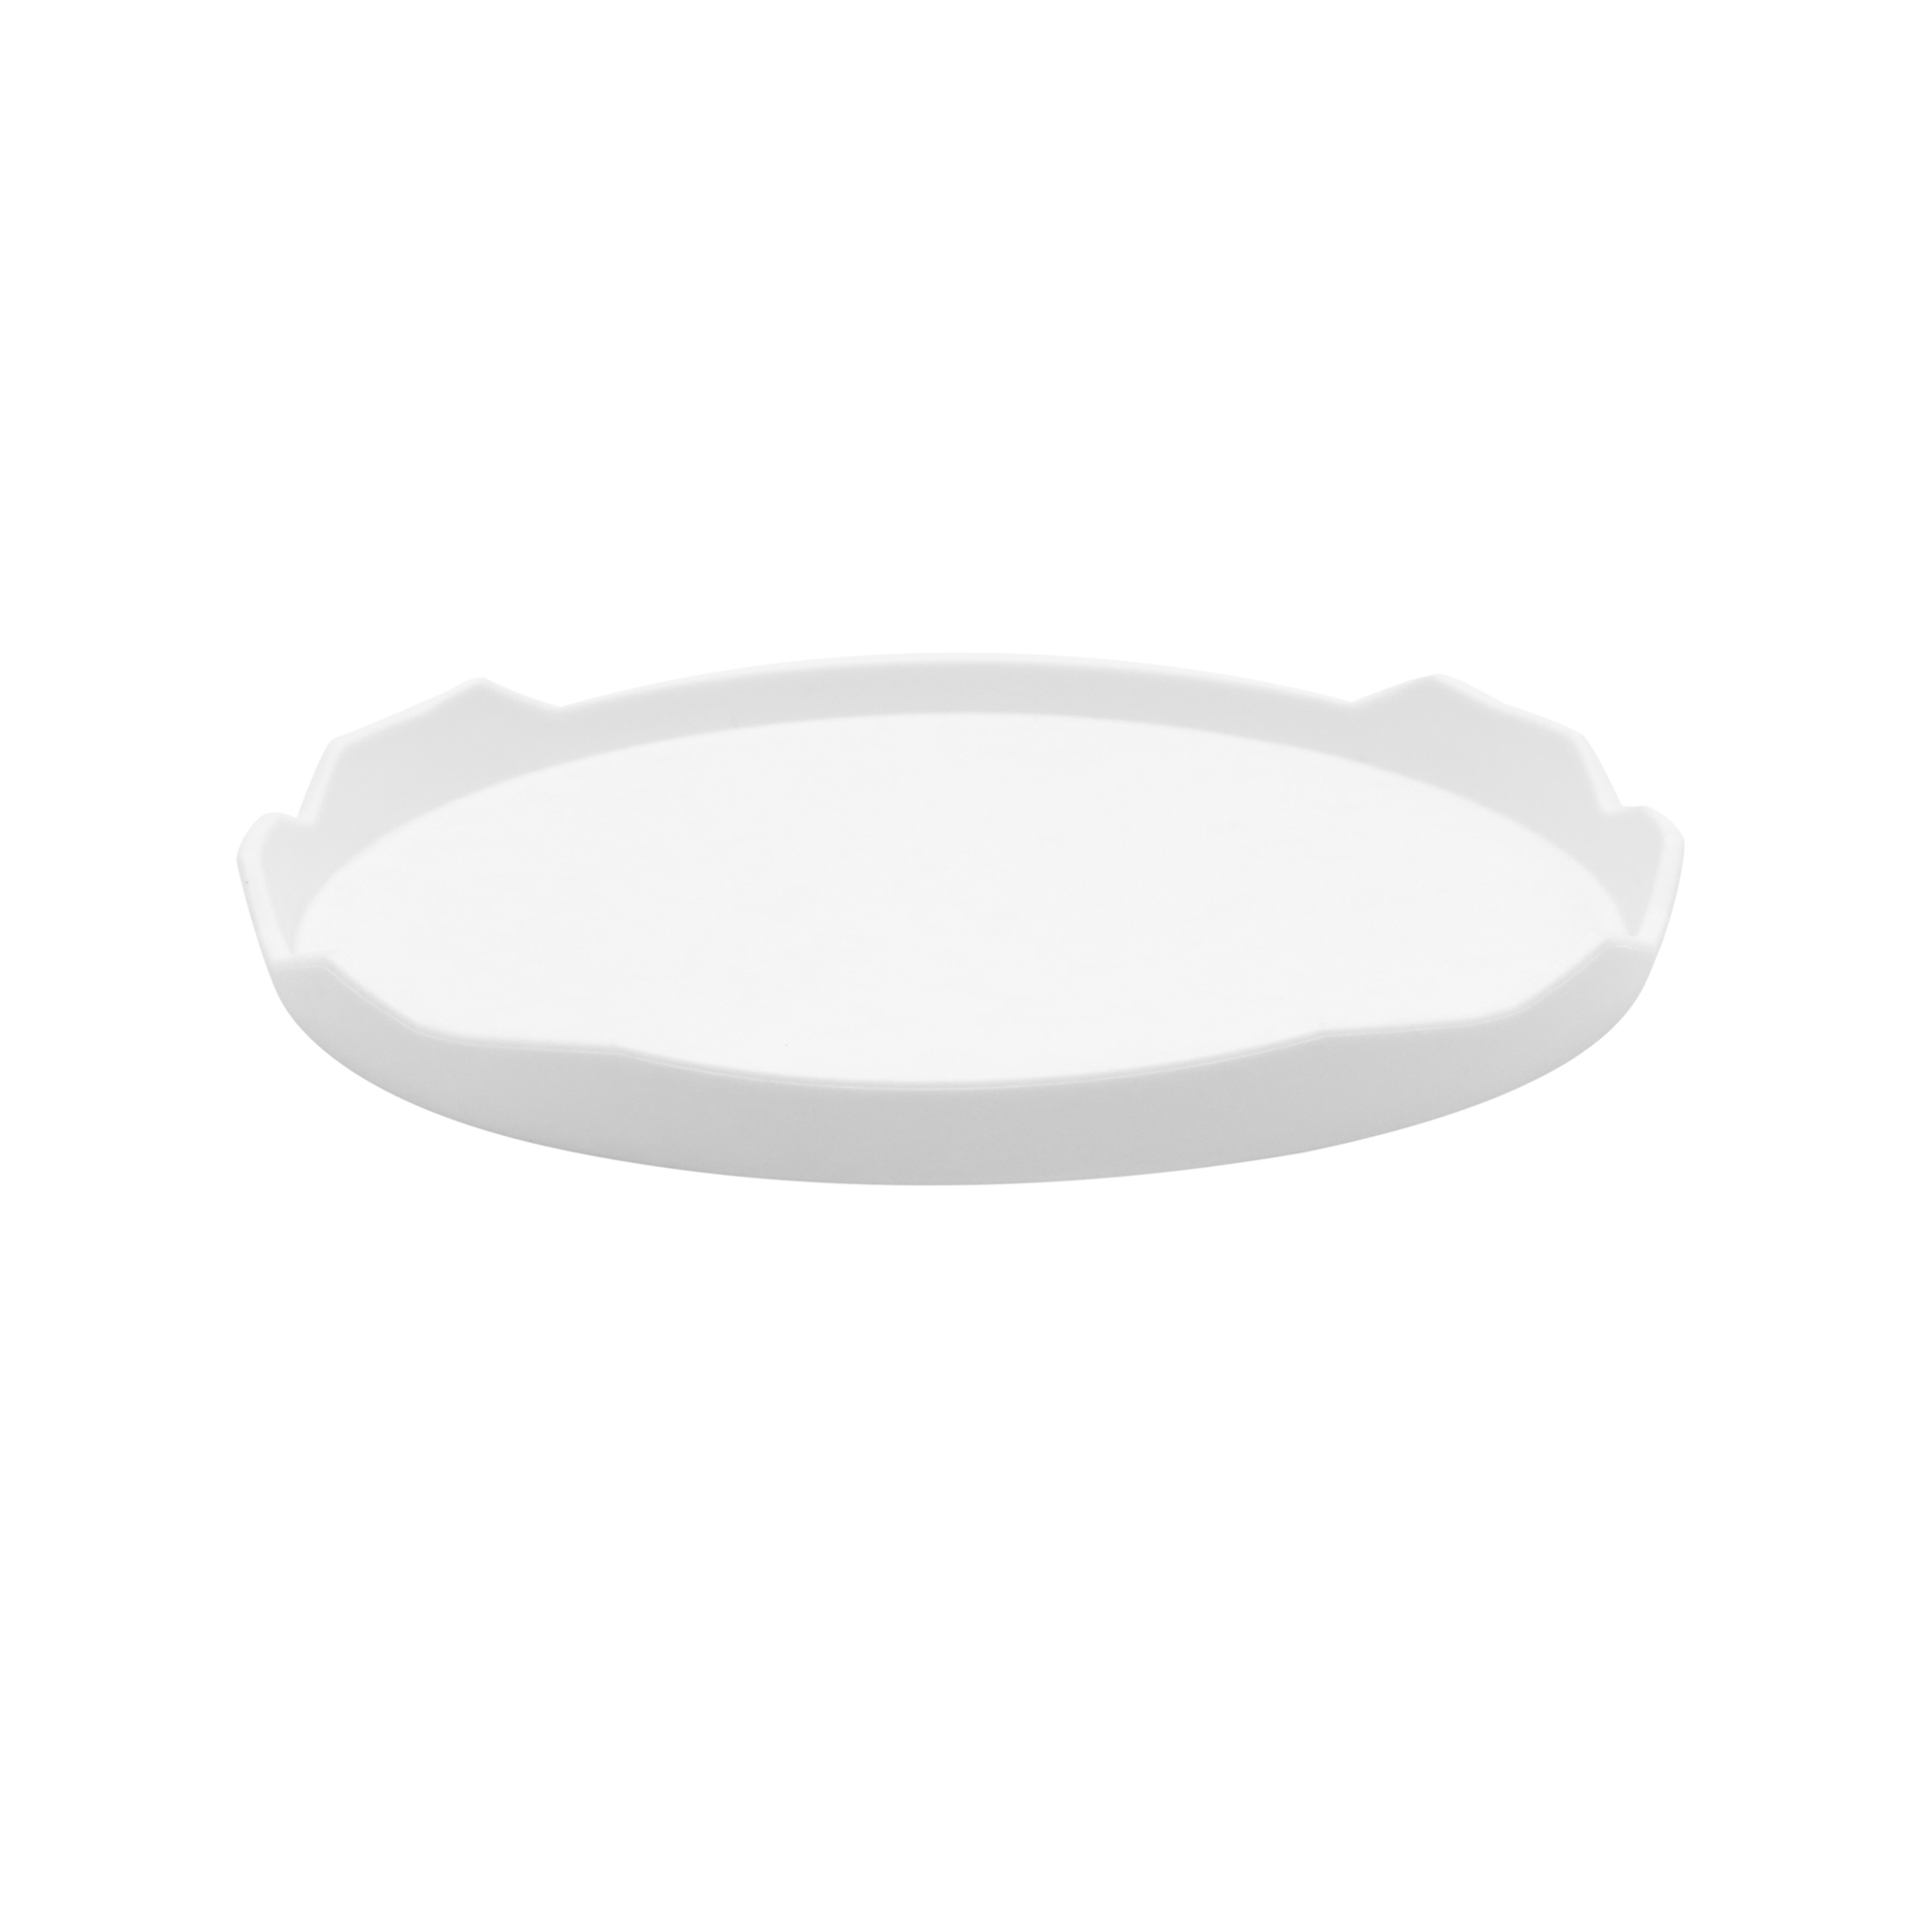 3.2 x 2.4 Inch White Plastic Water Food Plate for Terrarium Reptile Tanks by